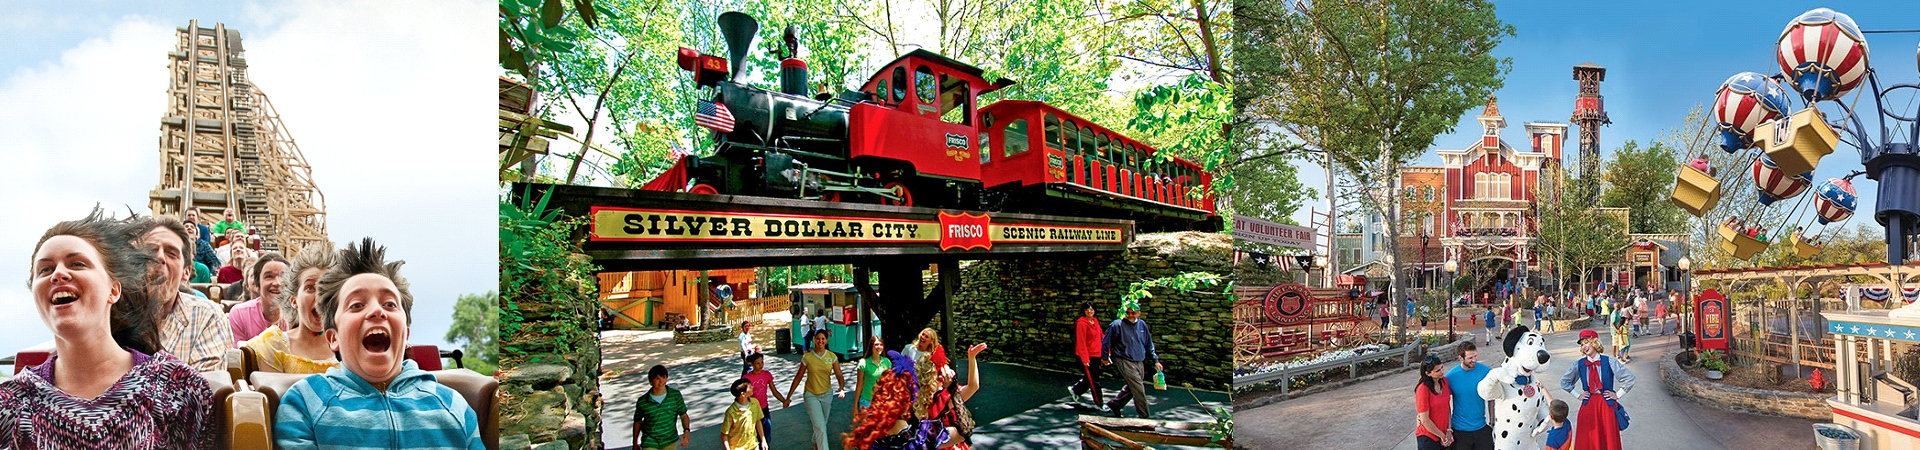 Silver dollar city discount coupons